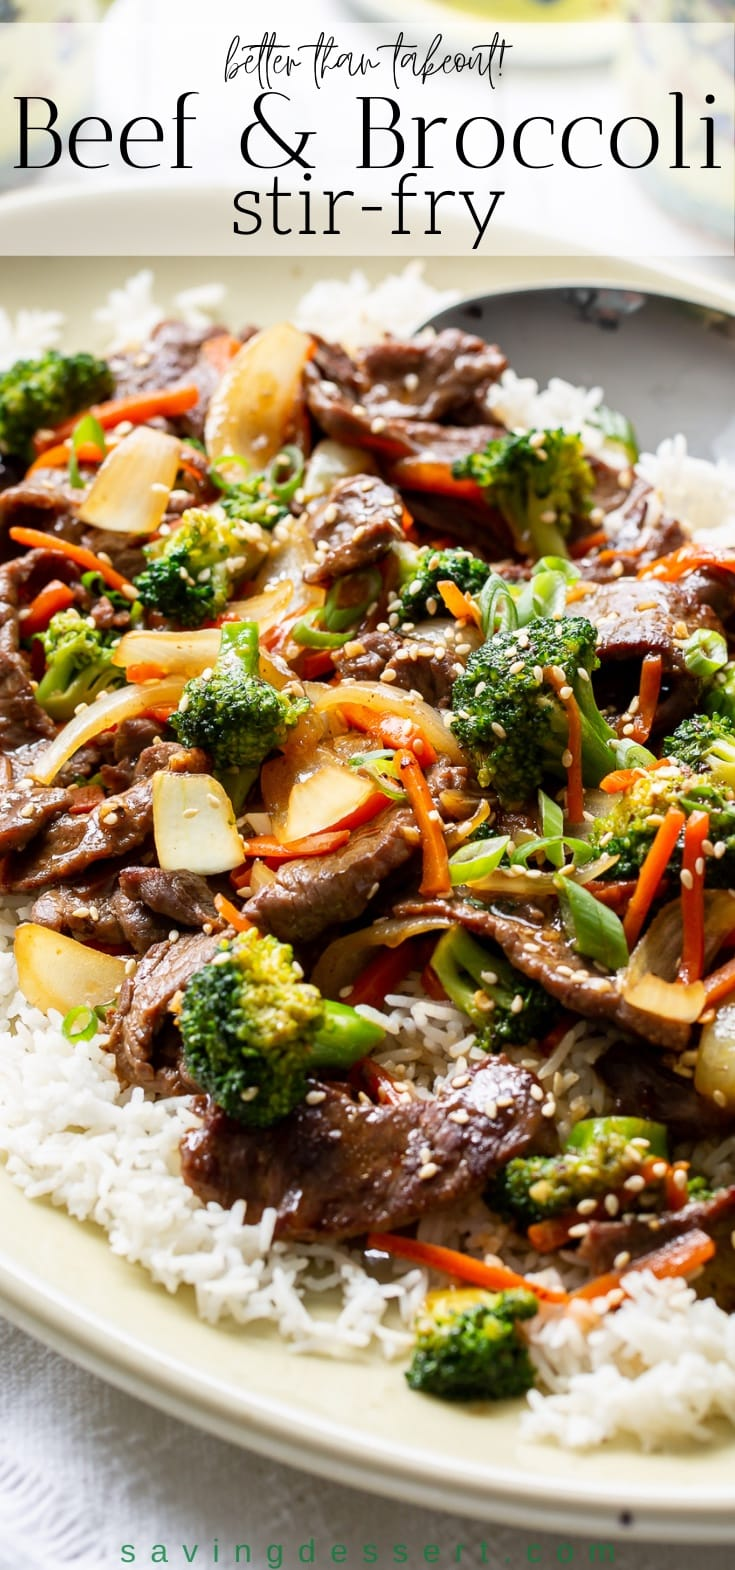 A platter with rice, beef and broccoli stir-fry garnished with sesame seeds